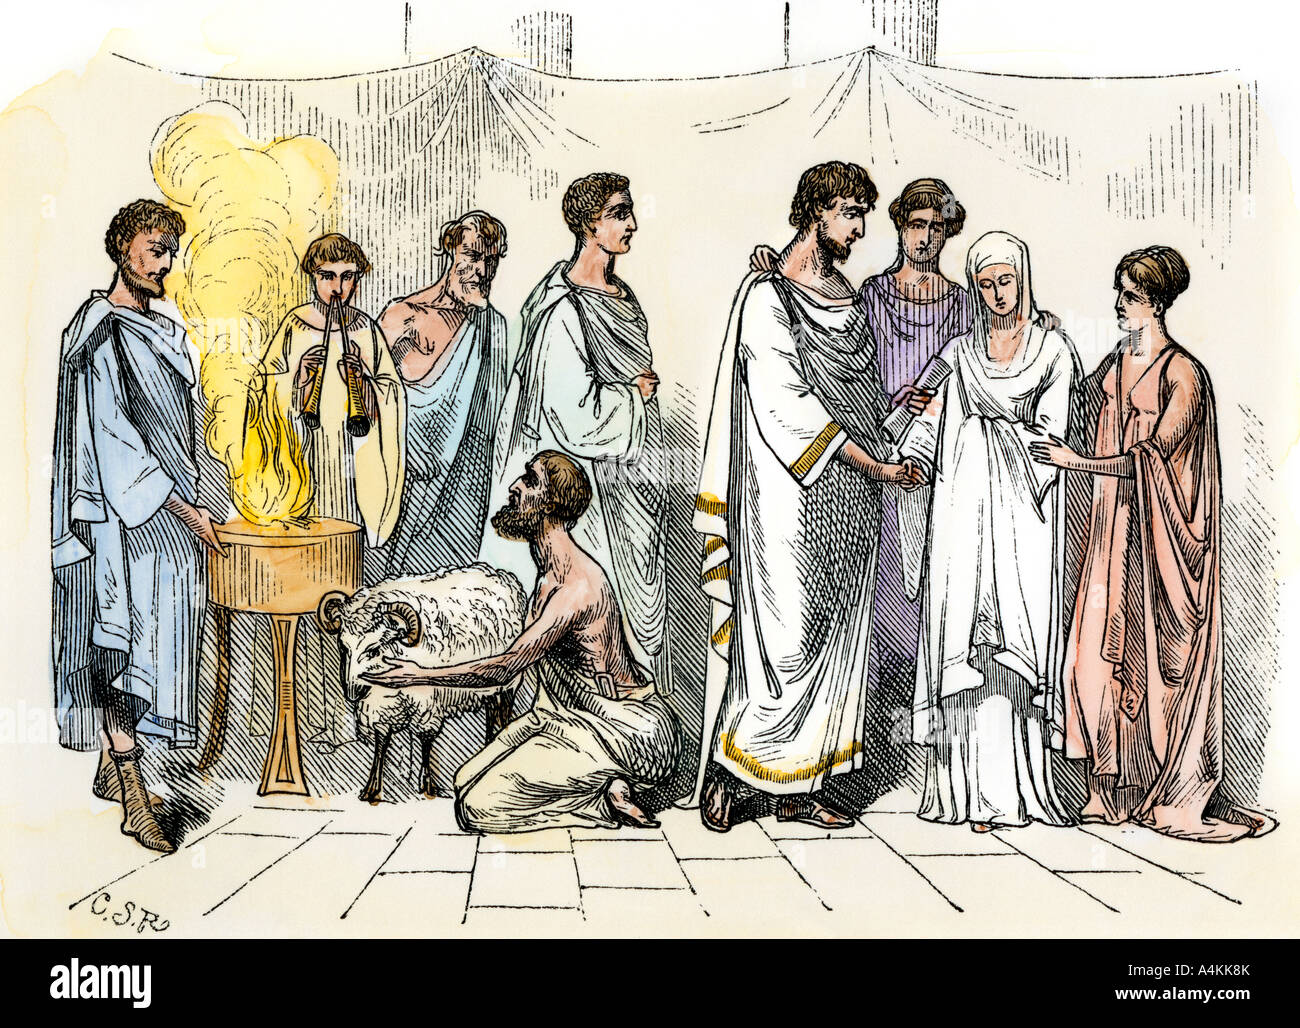 Matrimonio Epoca Romana : Sacrifice of a ram for marriage ceremony in ancient rome